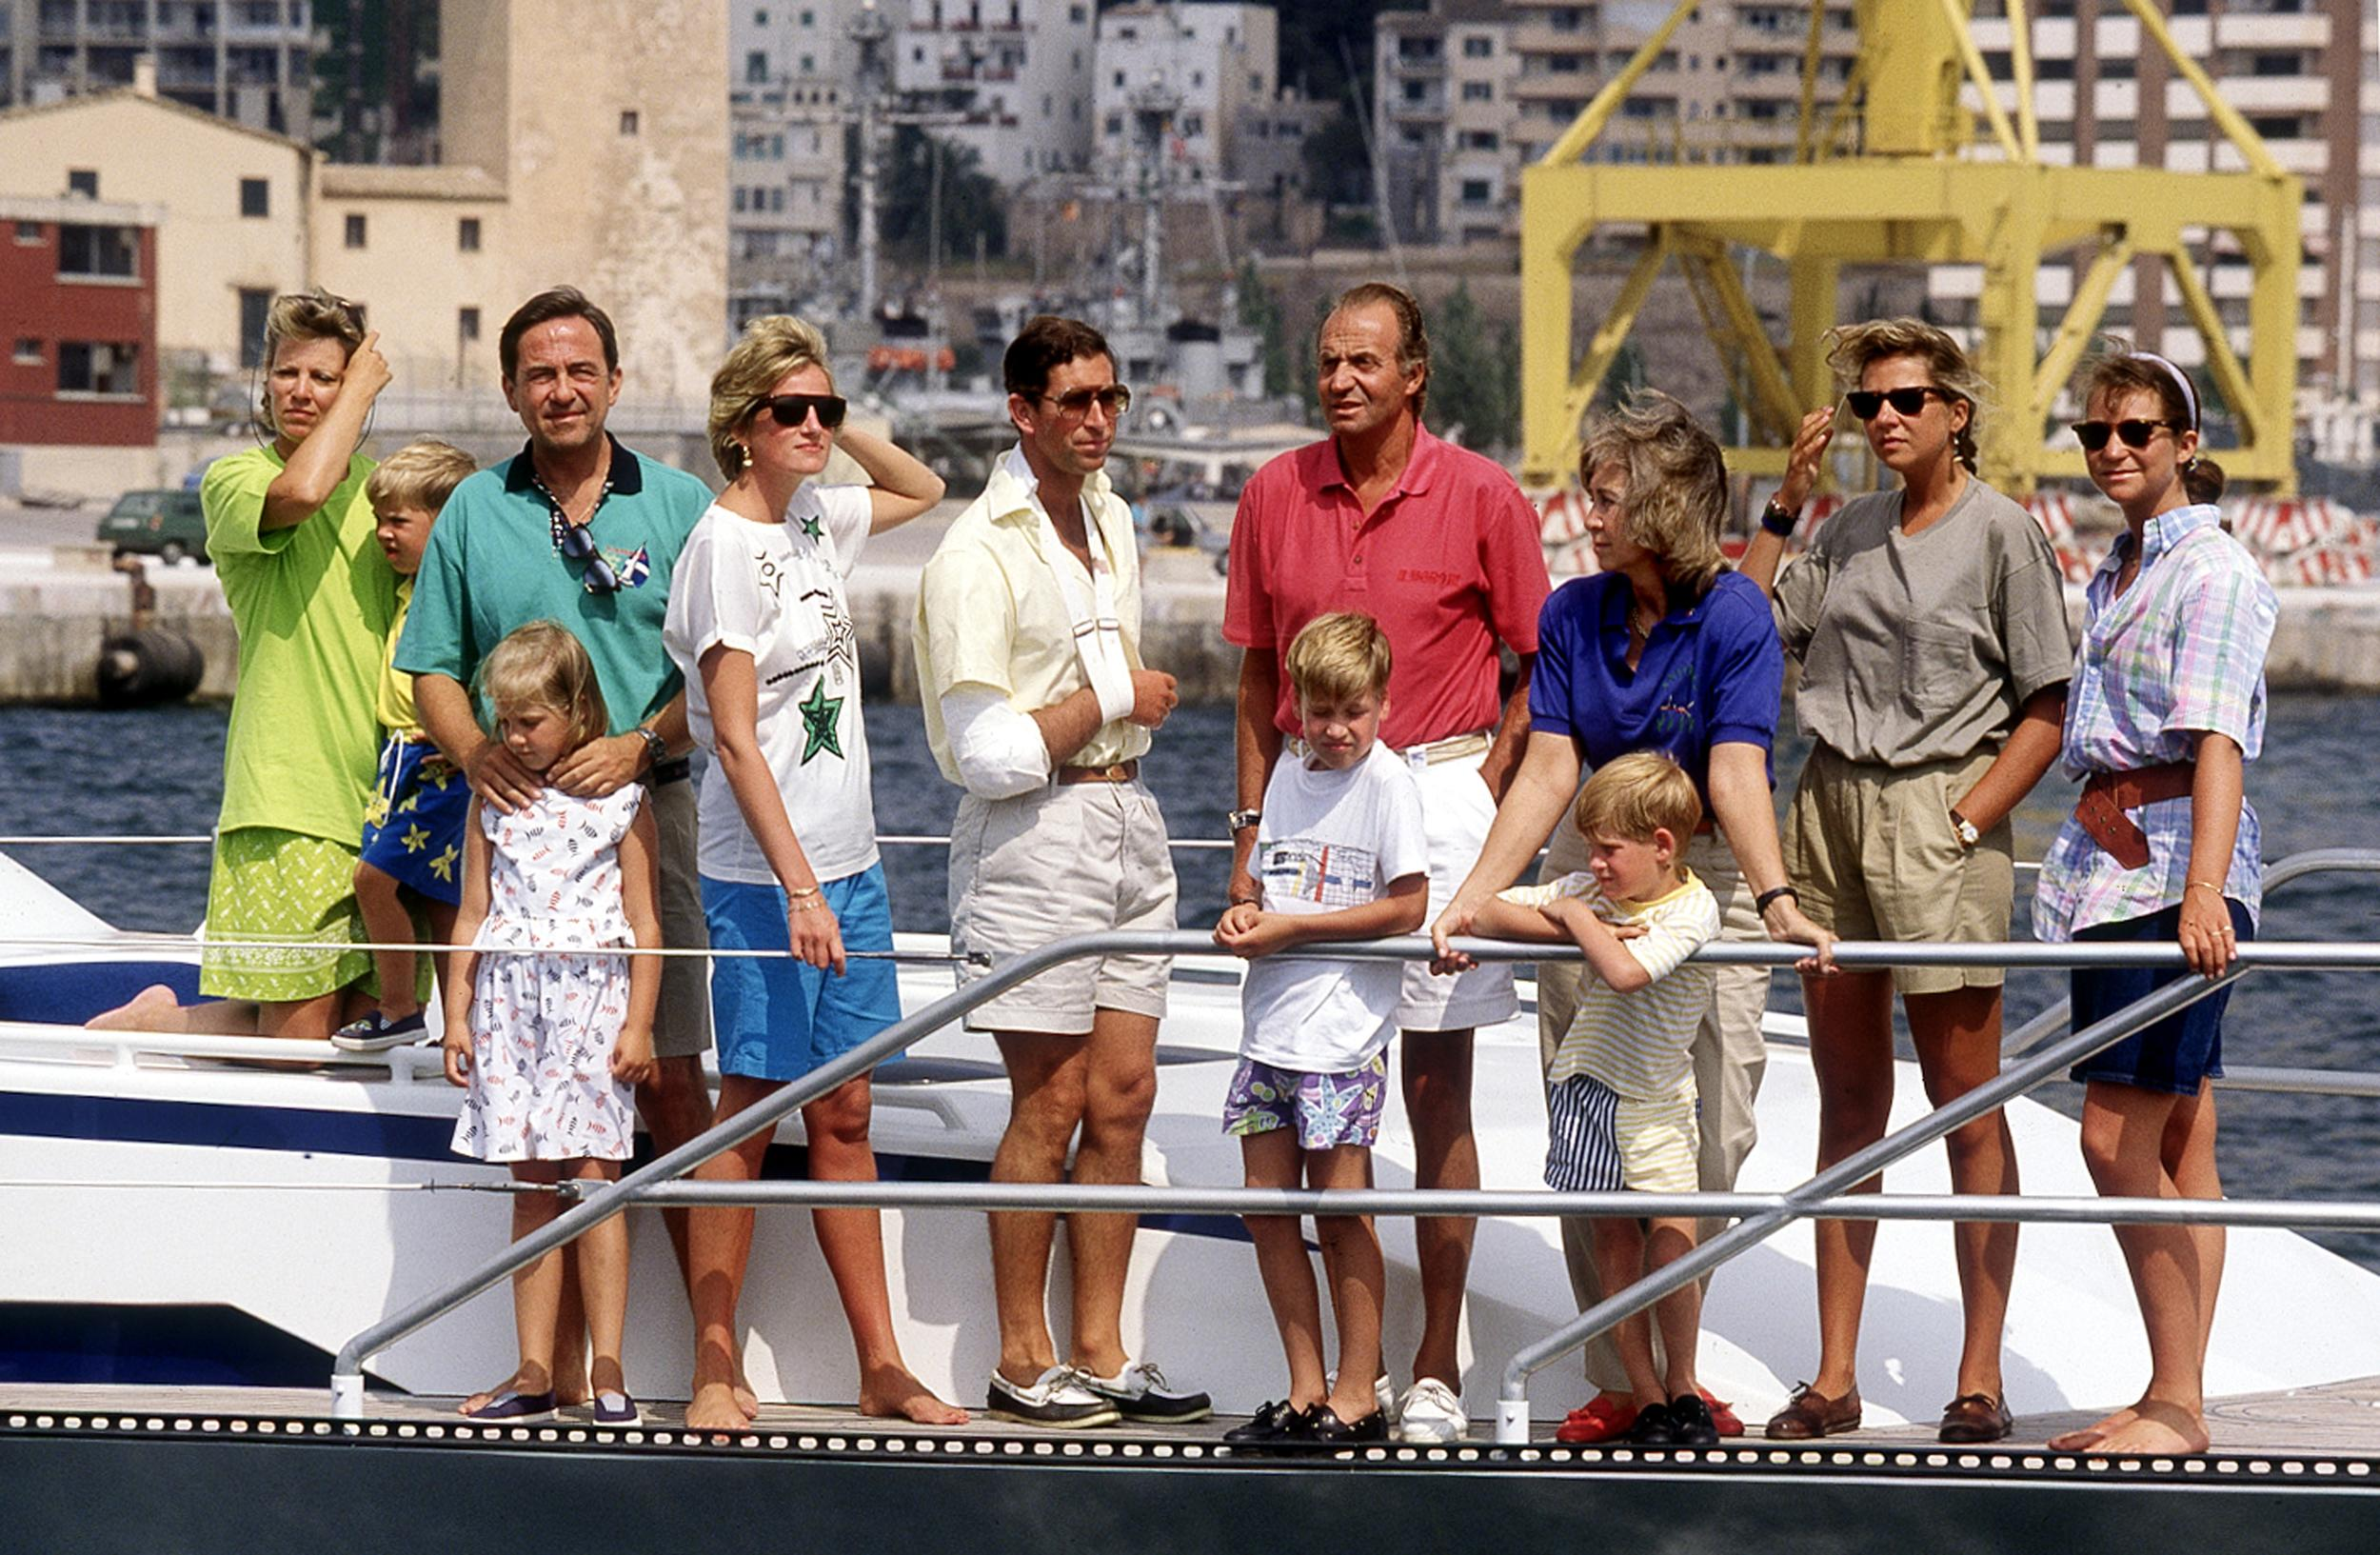 European royalty on King Juan Carlos of Spain's motor cruiser during a family holiday in Palma de Mallorca, August 1990. From left to right, Queen Anne Marie of Greece, Prince Philippos of Greece, ex-King Constantine of Greece with Princess Theodora, Princess Diana, Prince Charles, King Juan Carlos of Spain with Prince William, Queen Sophia of Spain with Prince Harry, Princess Cristina of Spain and Princess Elena of Spain. (Photo by Jayne Fincher/Princess Diana Archive/Getty Images)